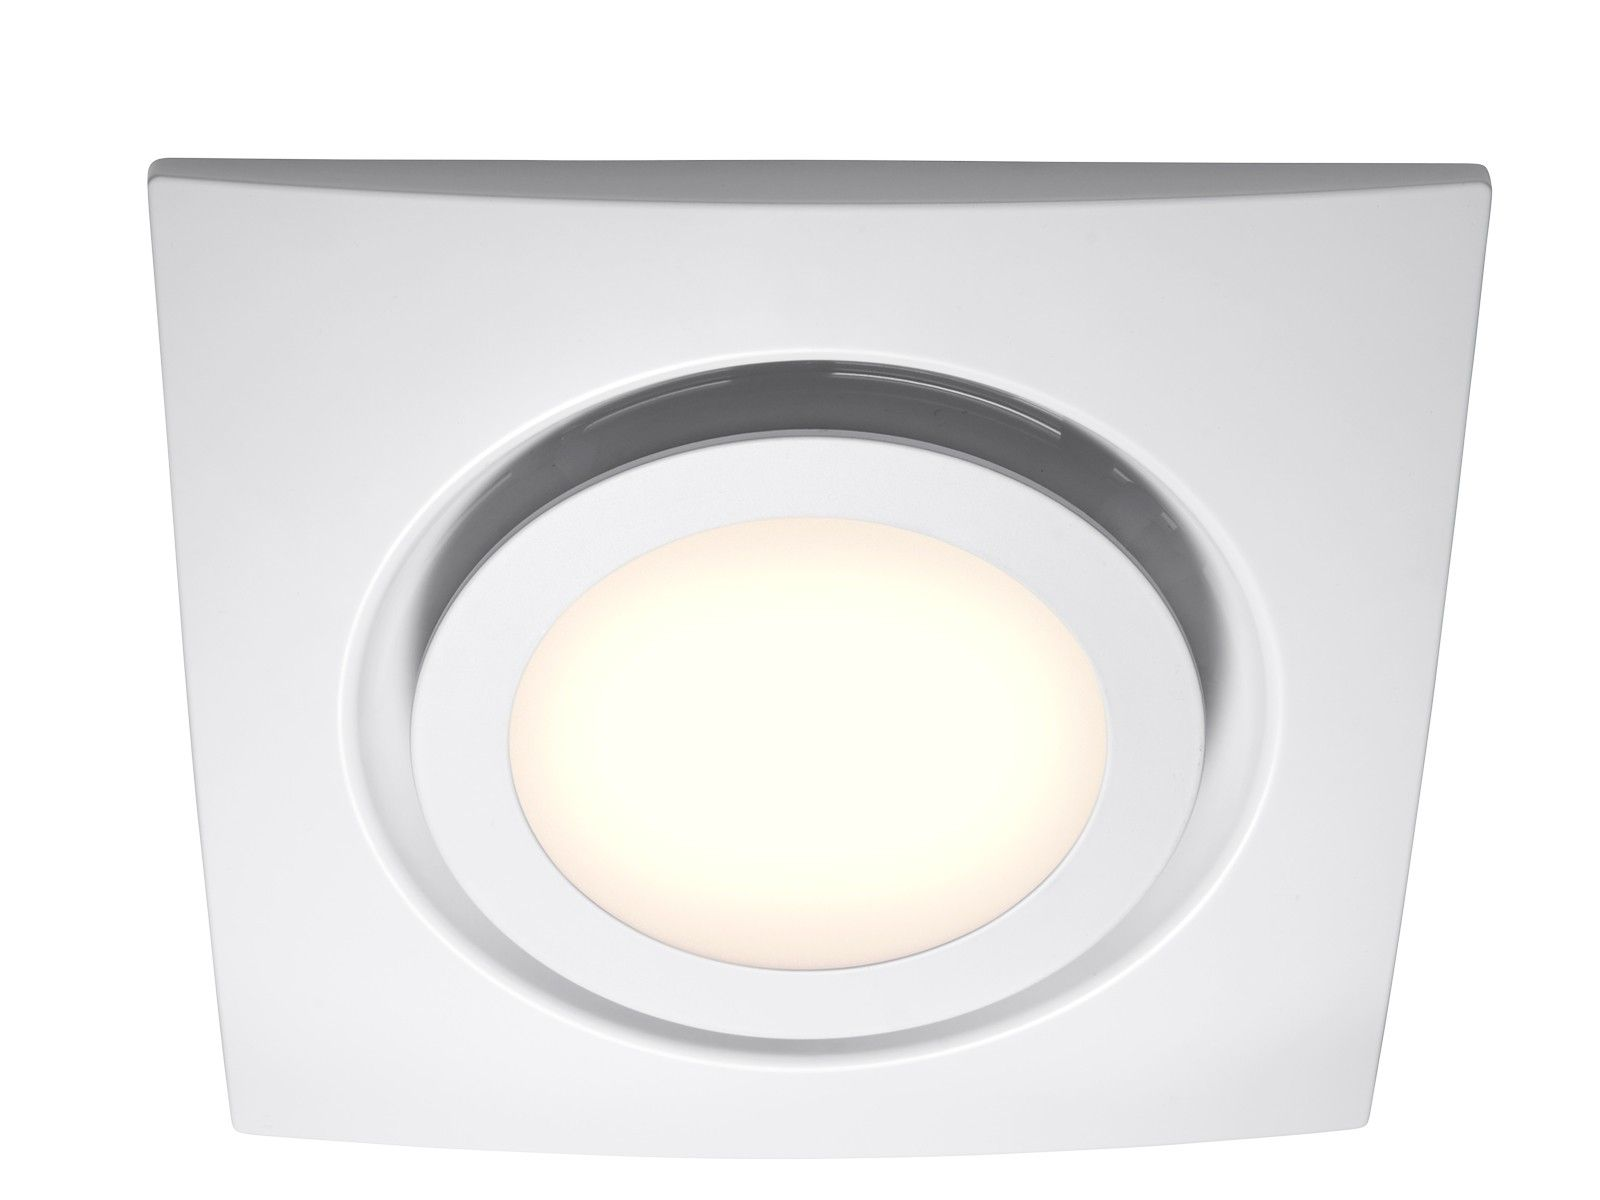 White Exhaust Fan With Led Light Bathroom Fan Light Bathroom